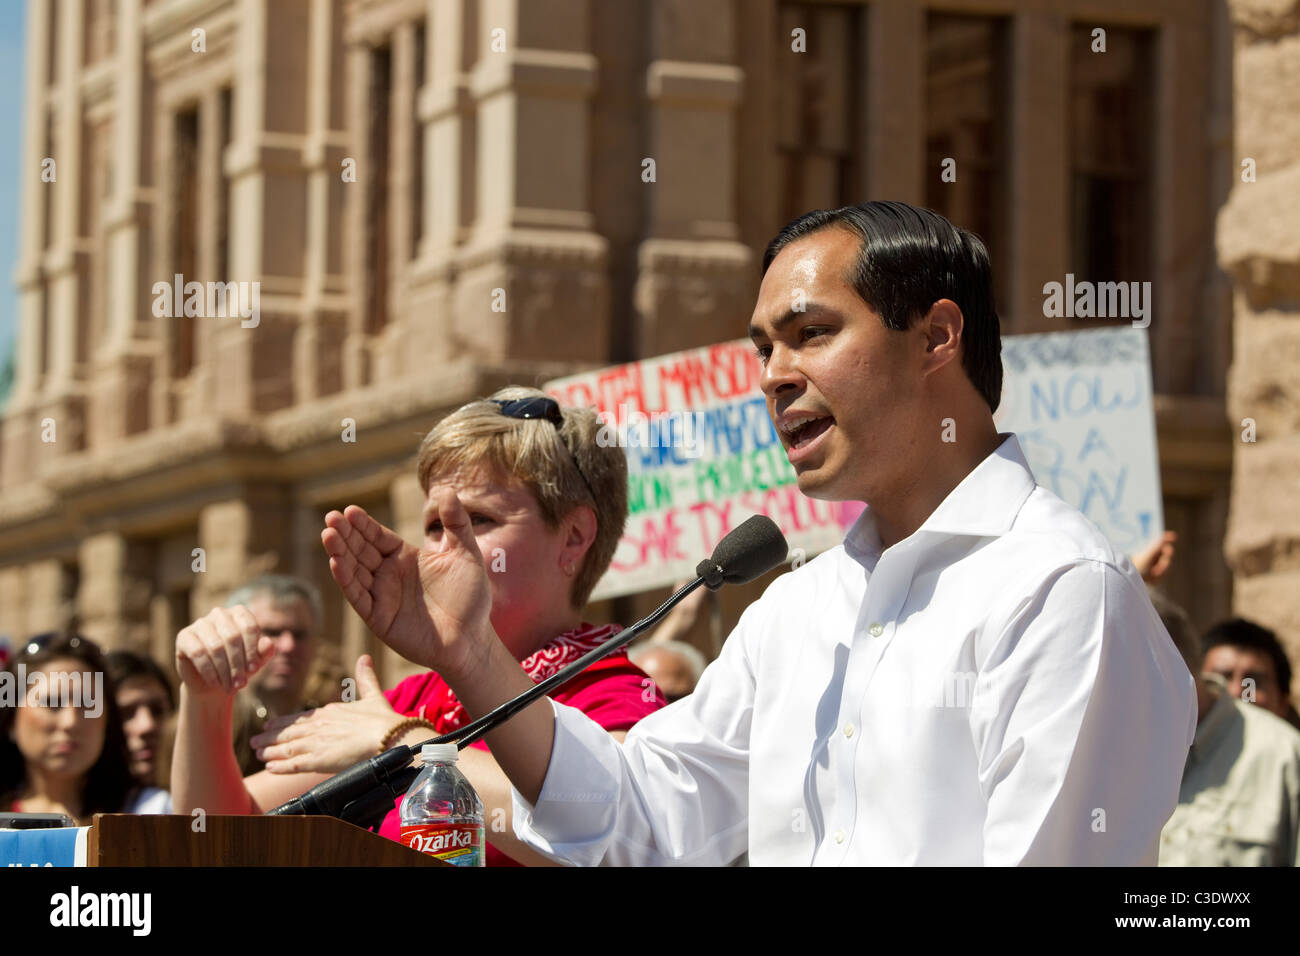 San Antonio Texas Mayor Julian Castro speaks at rally against education budget cuts - Stock Image